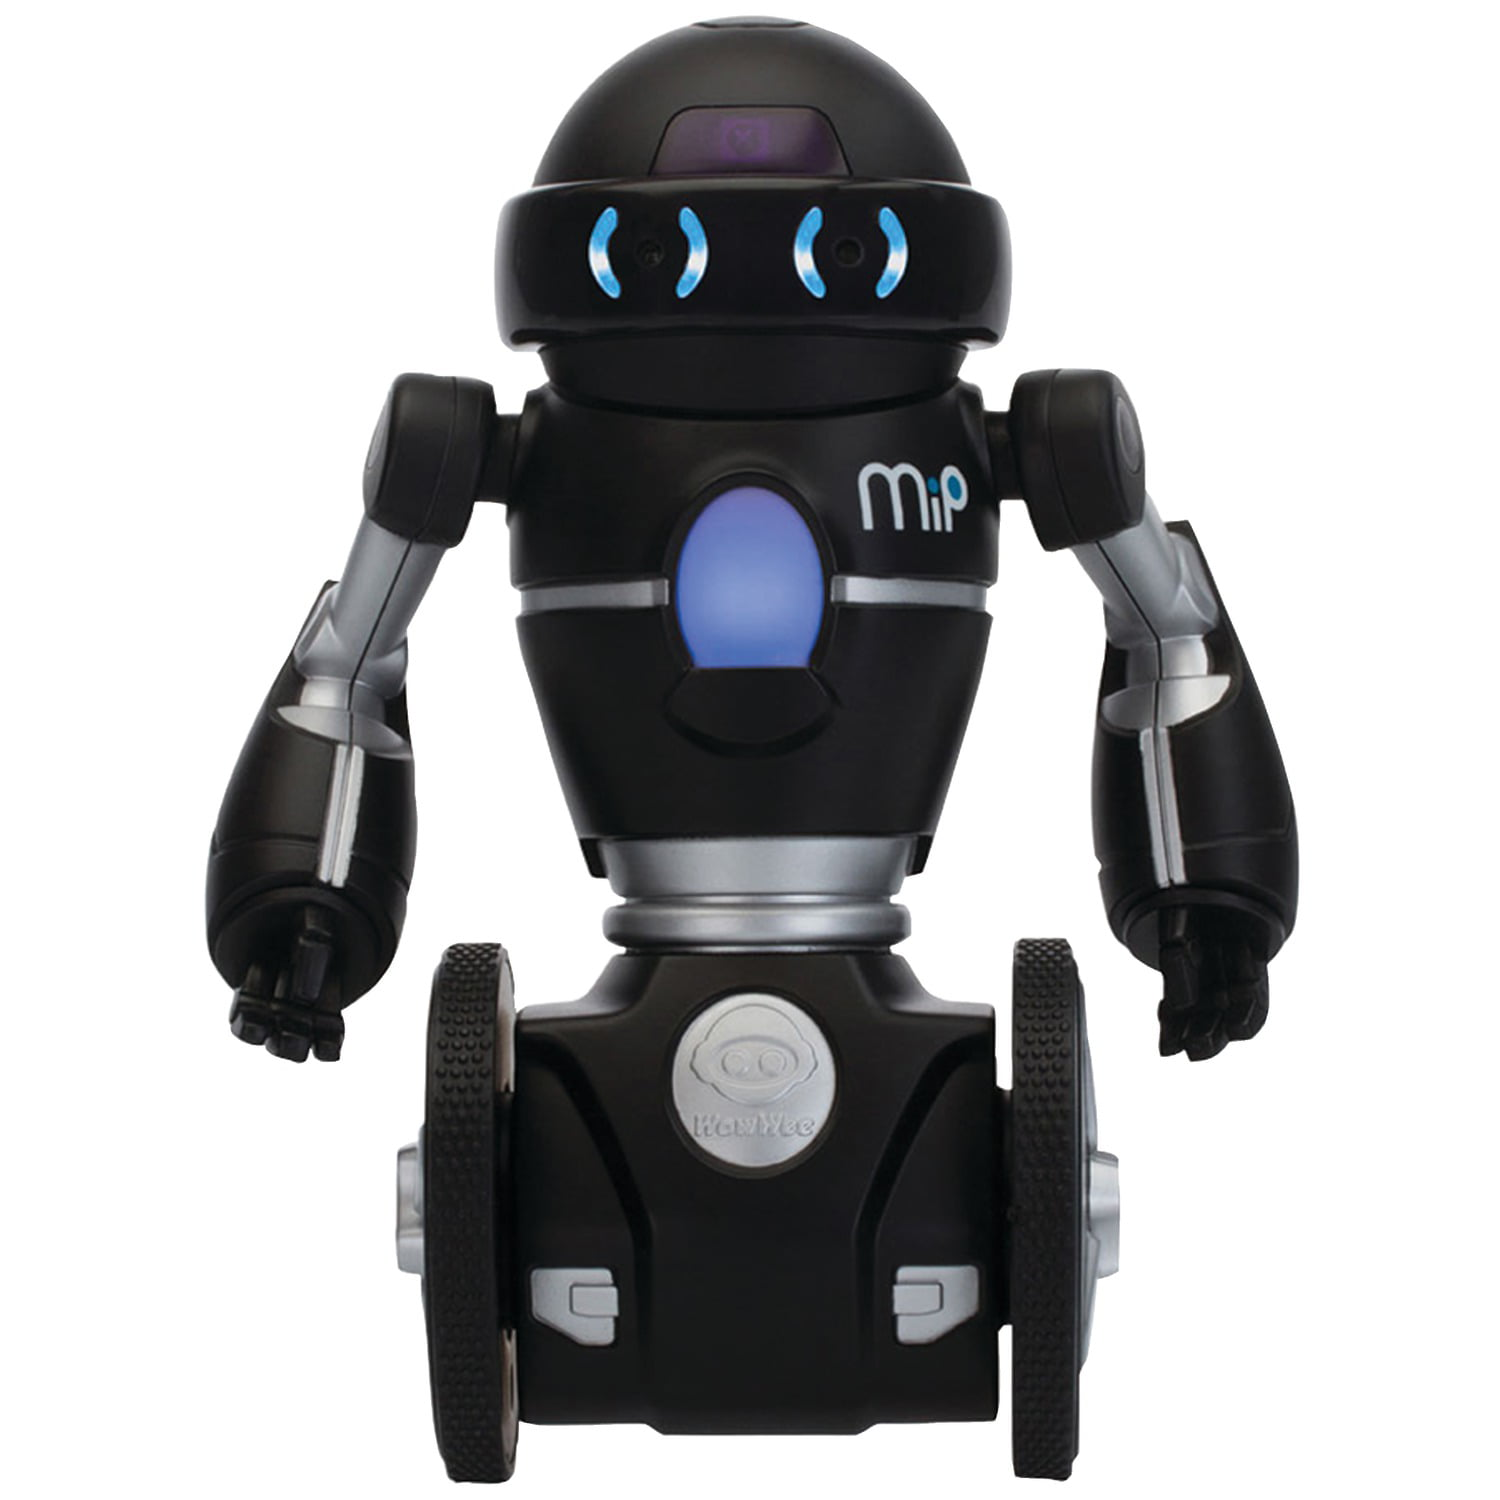 WowWee MiP Robot by WowWee